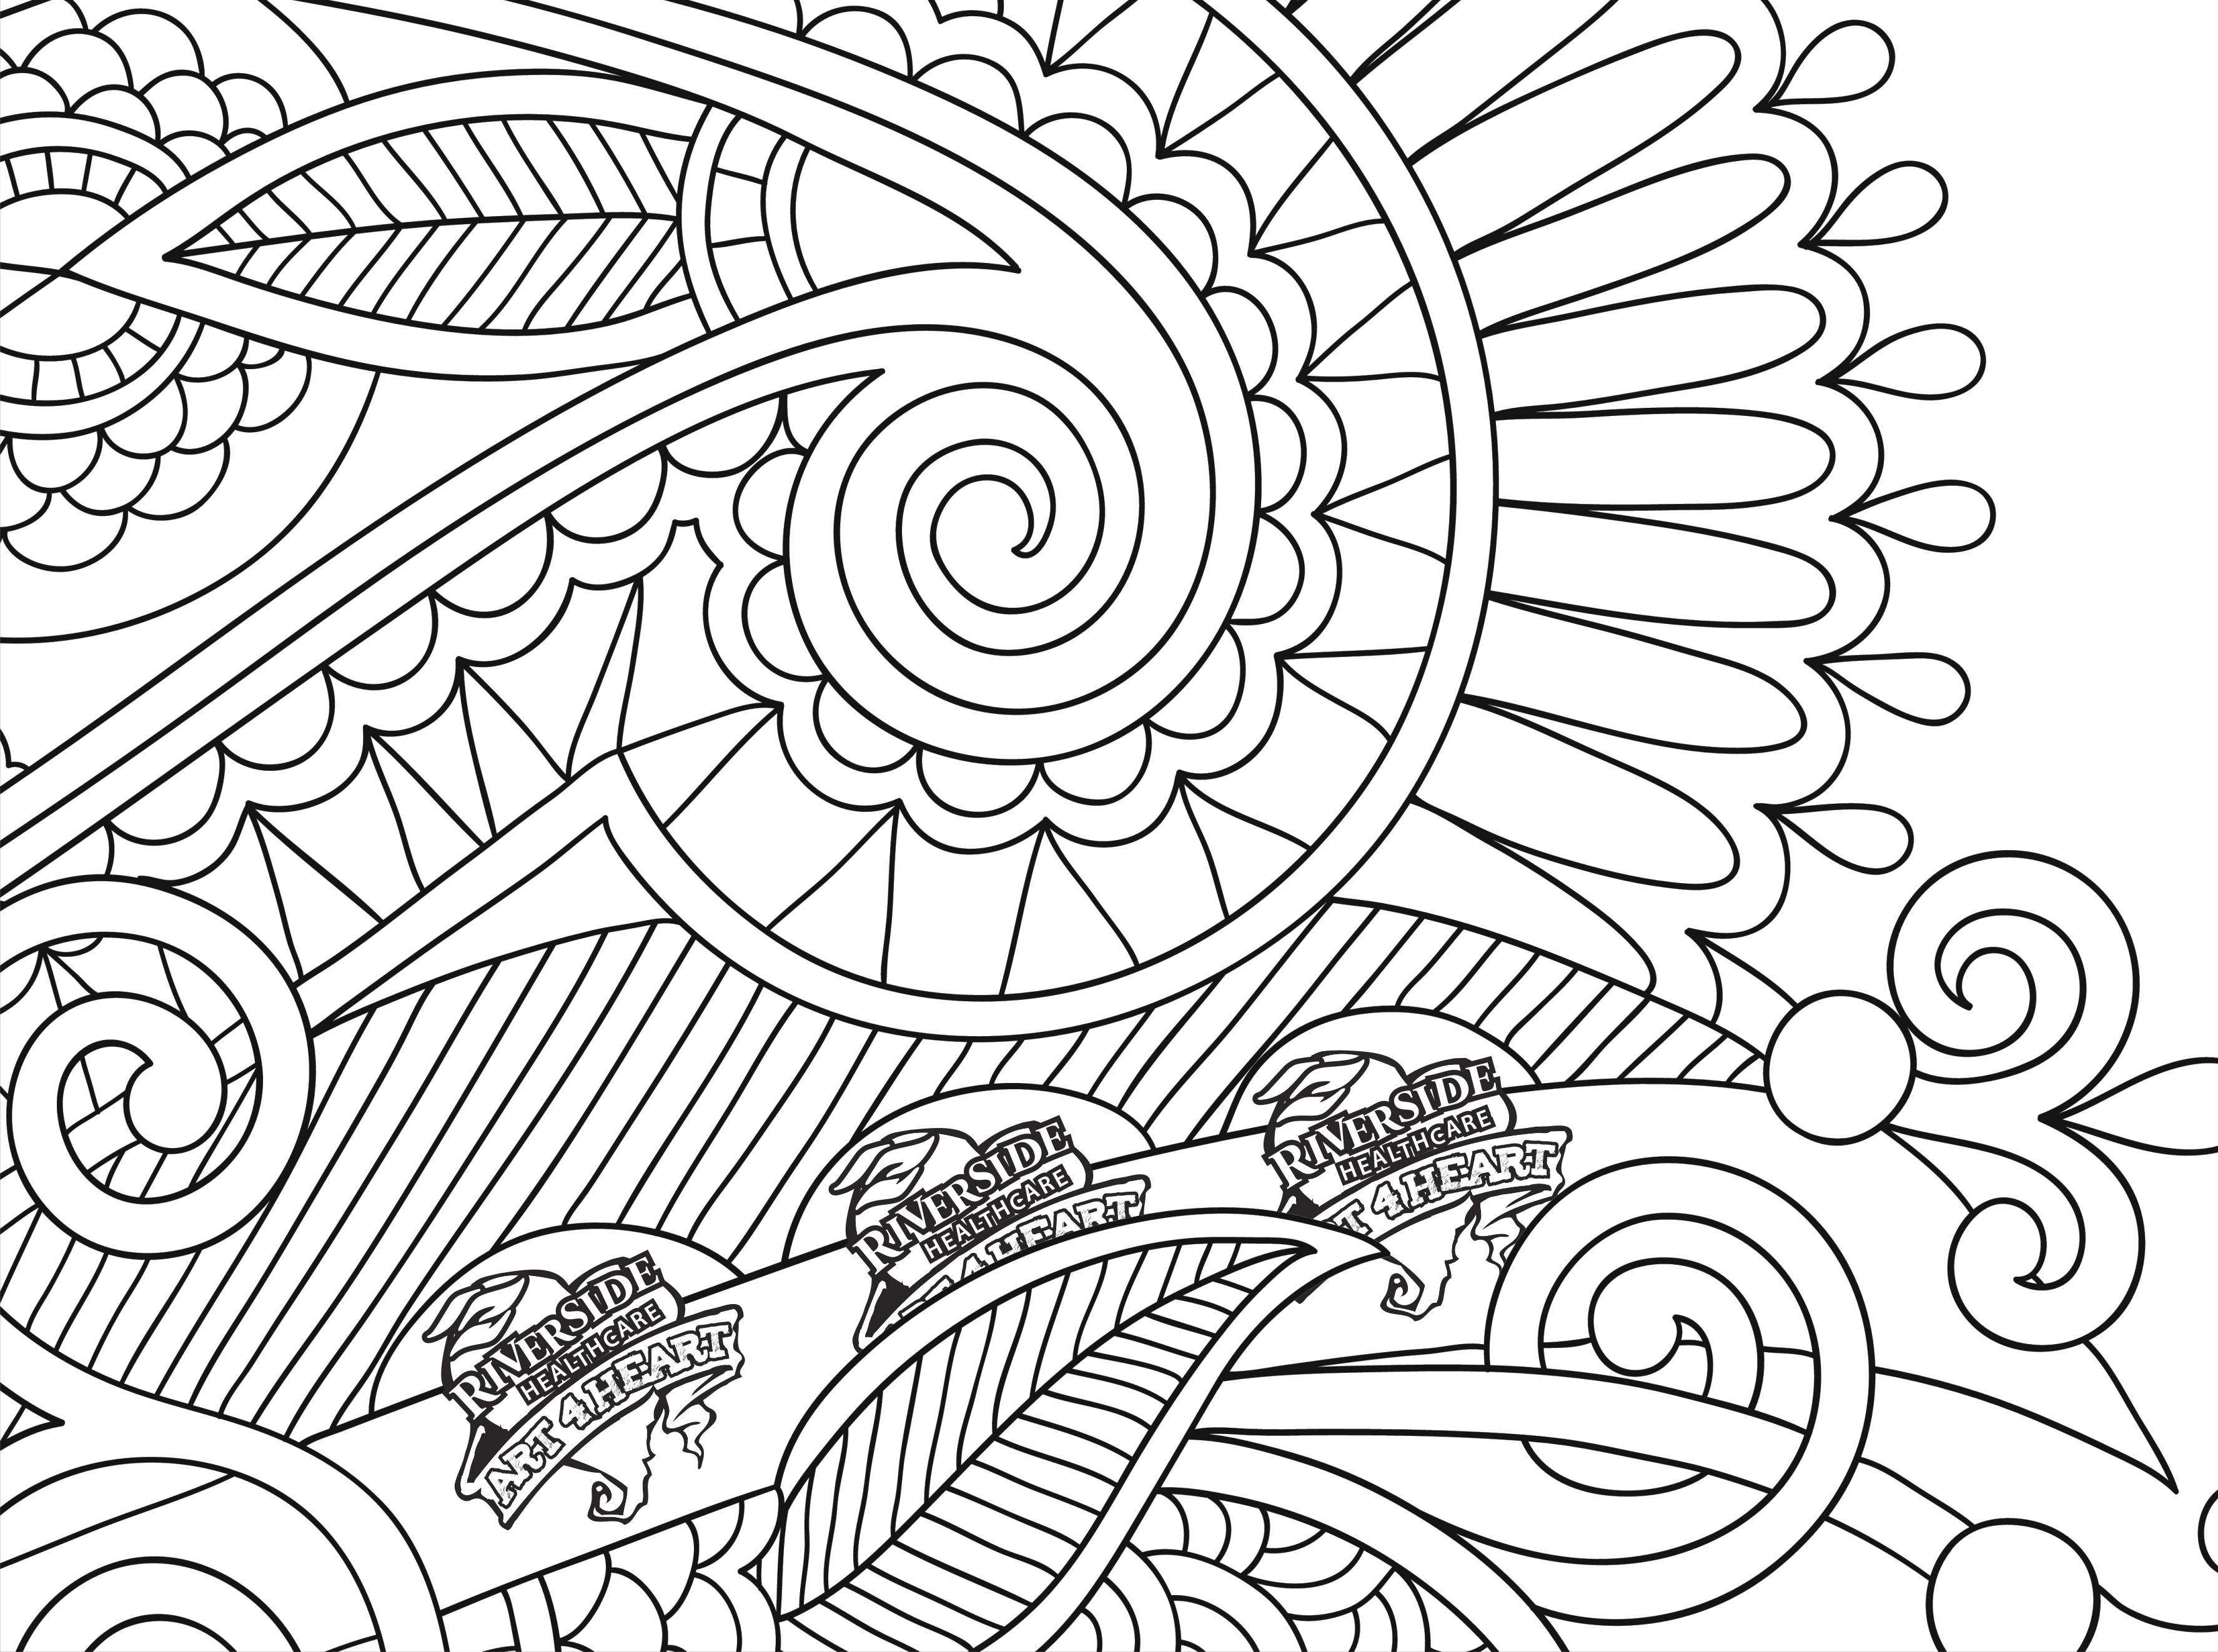 coloring book for adults 11 coloring pages for adults jpg psd vector eps coloring book for adults